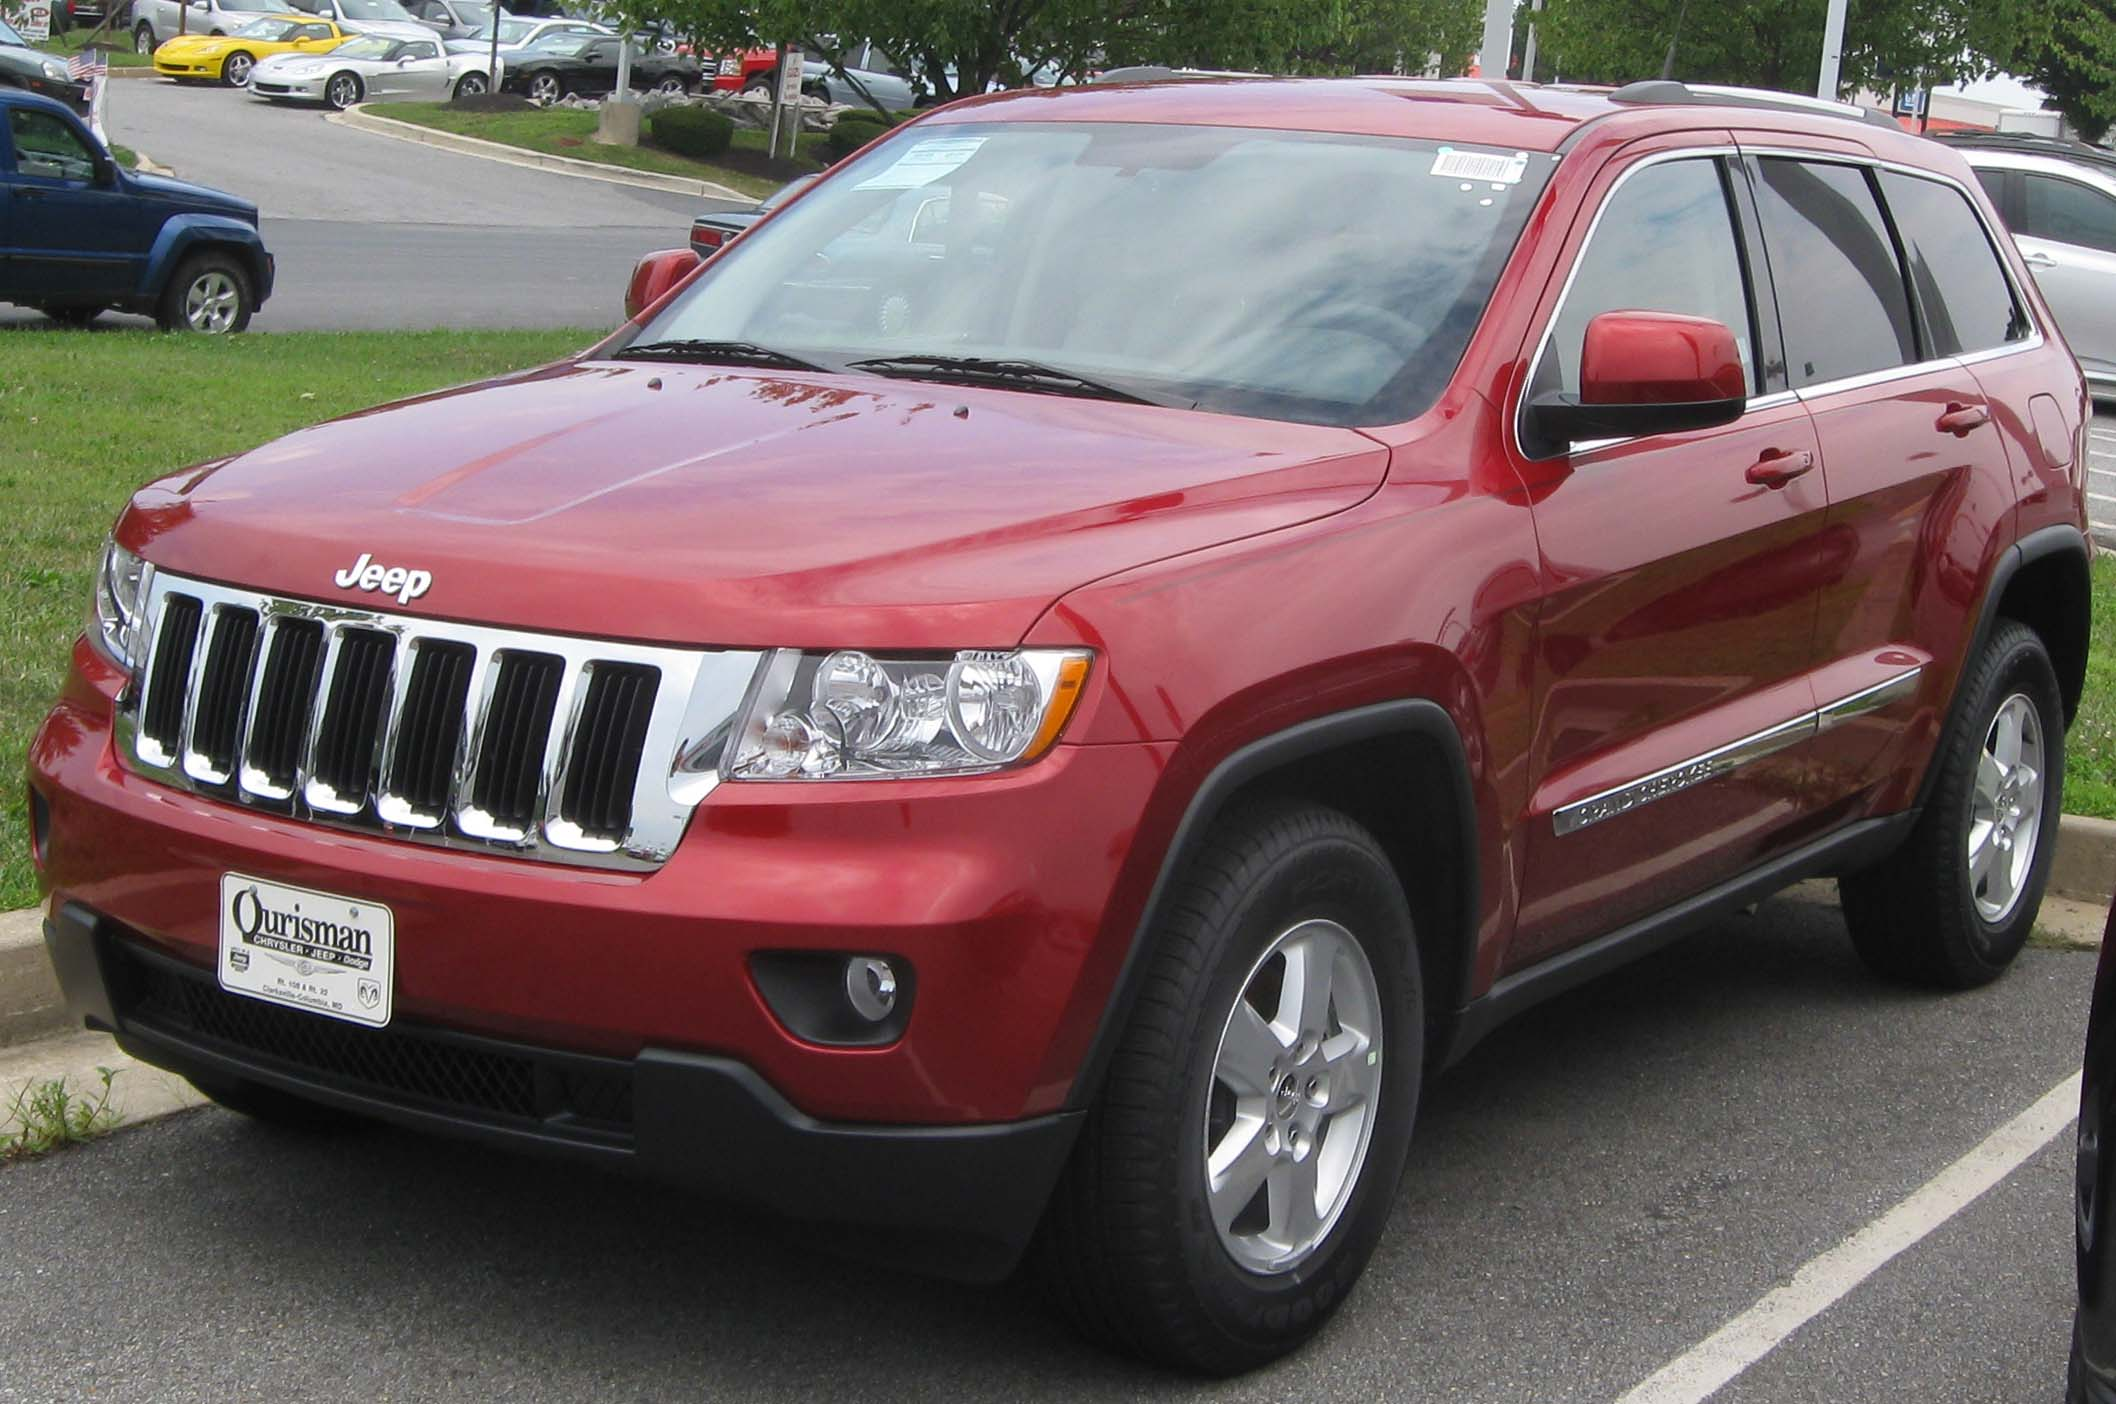 file:2011 jeep grand cherokee -- 08-12-2010 2 - wikimedia commons